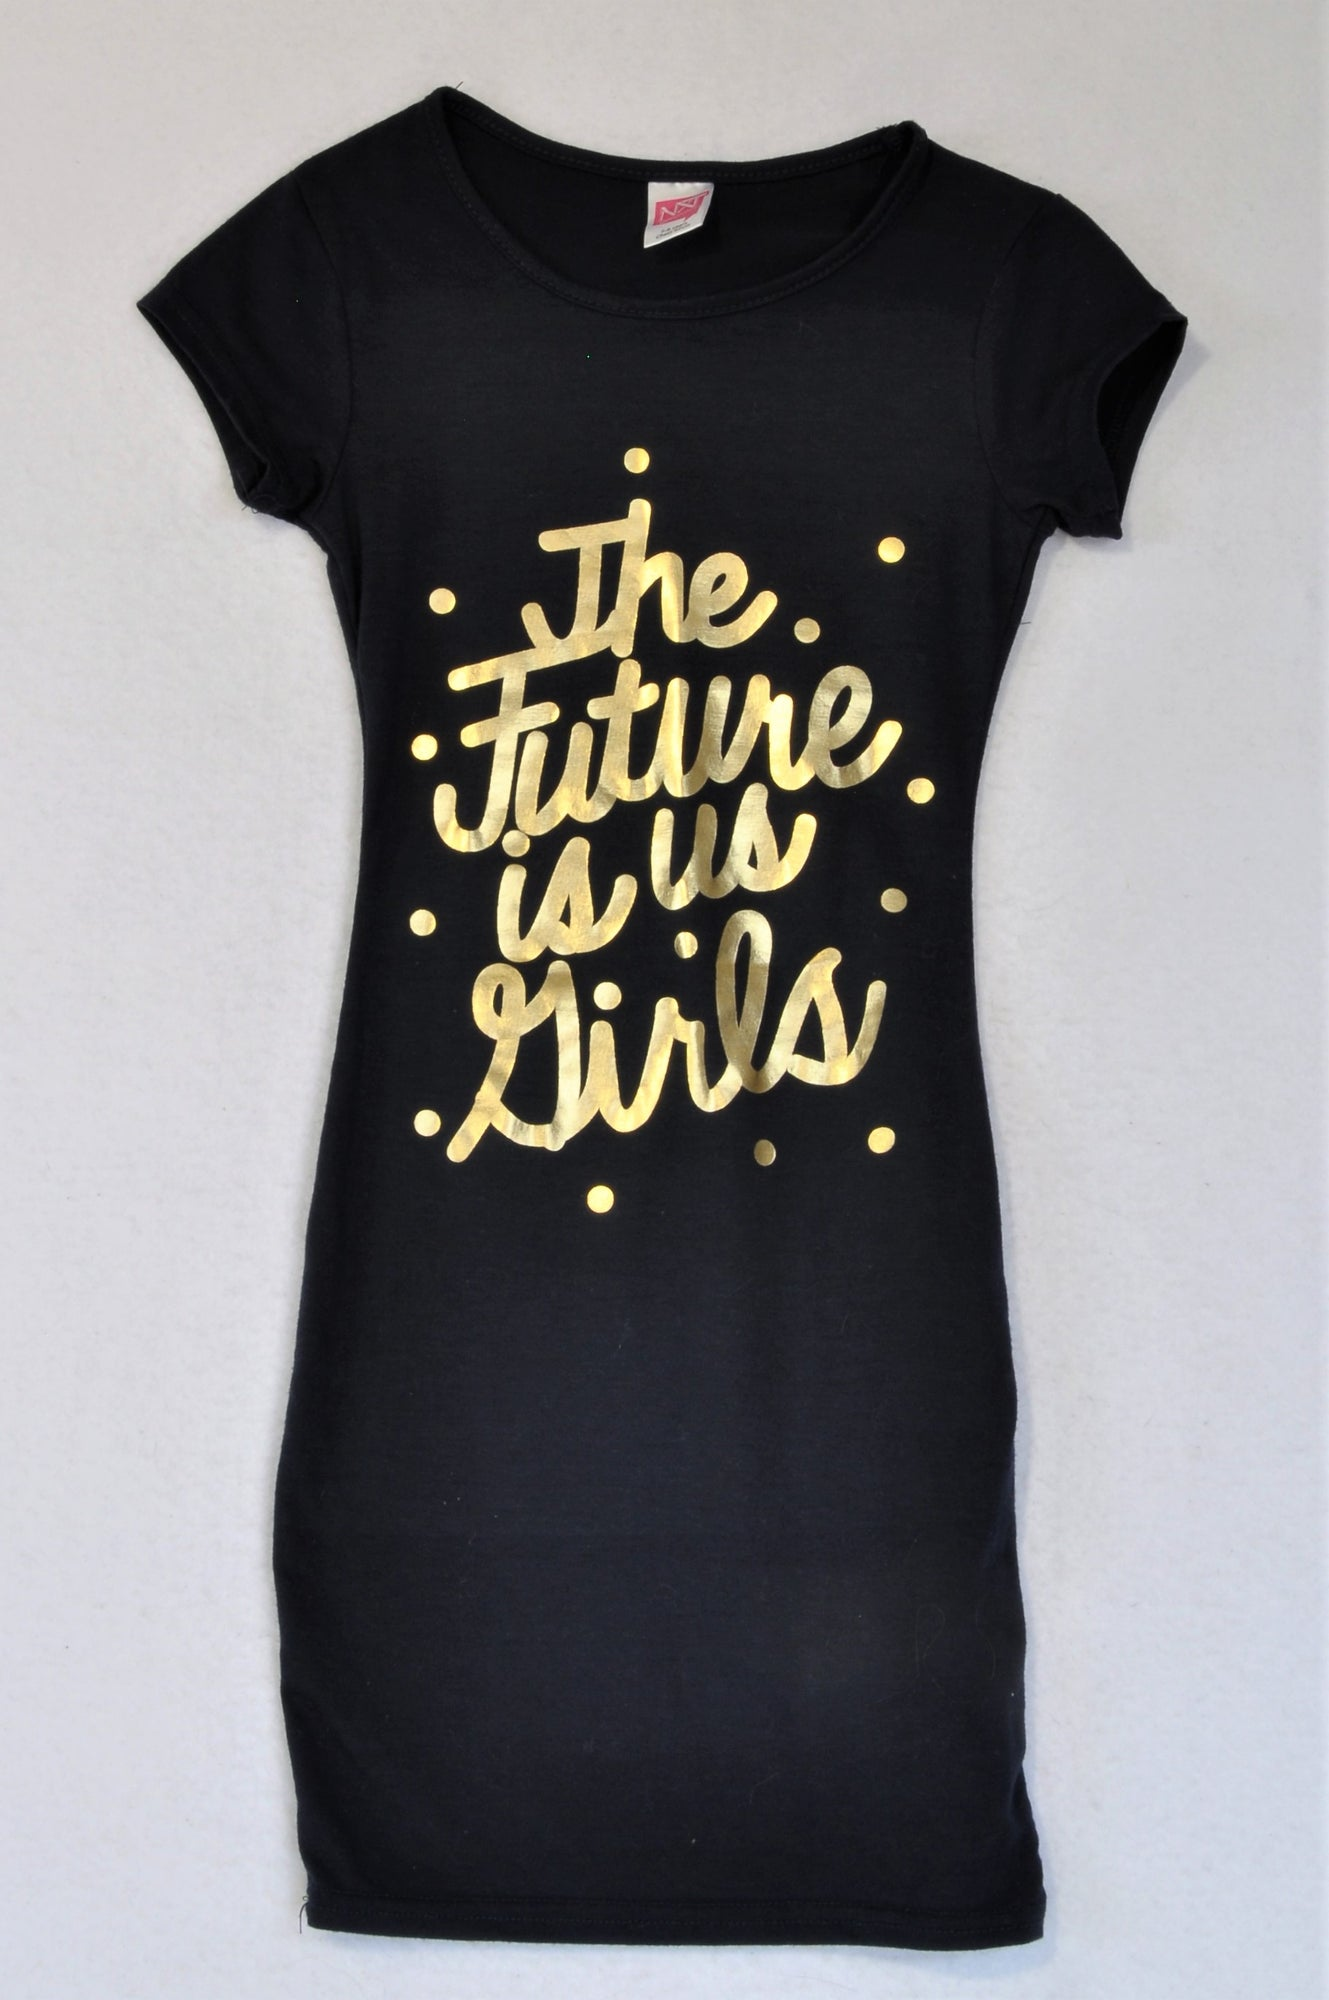 Nxt Generation Navy The Future Is Us Girls Dress Girls 5-6 years